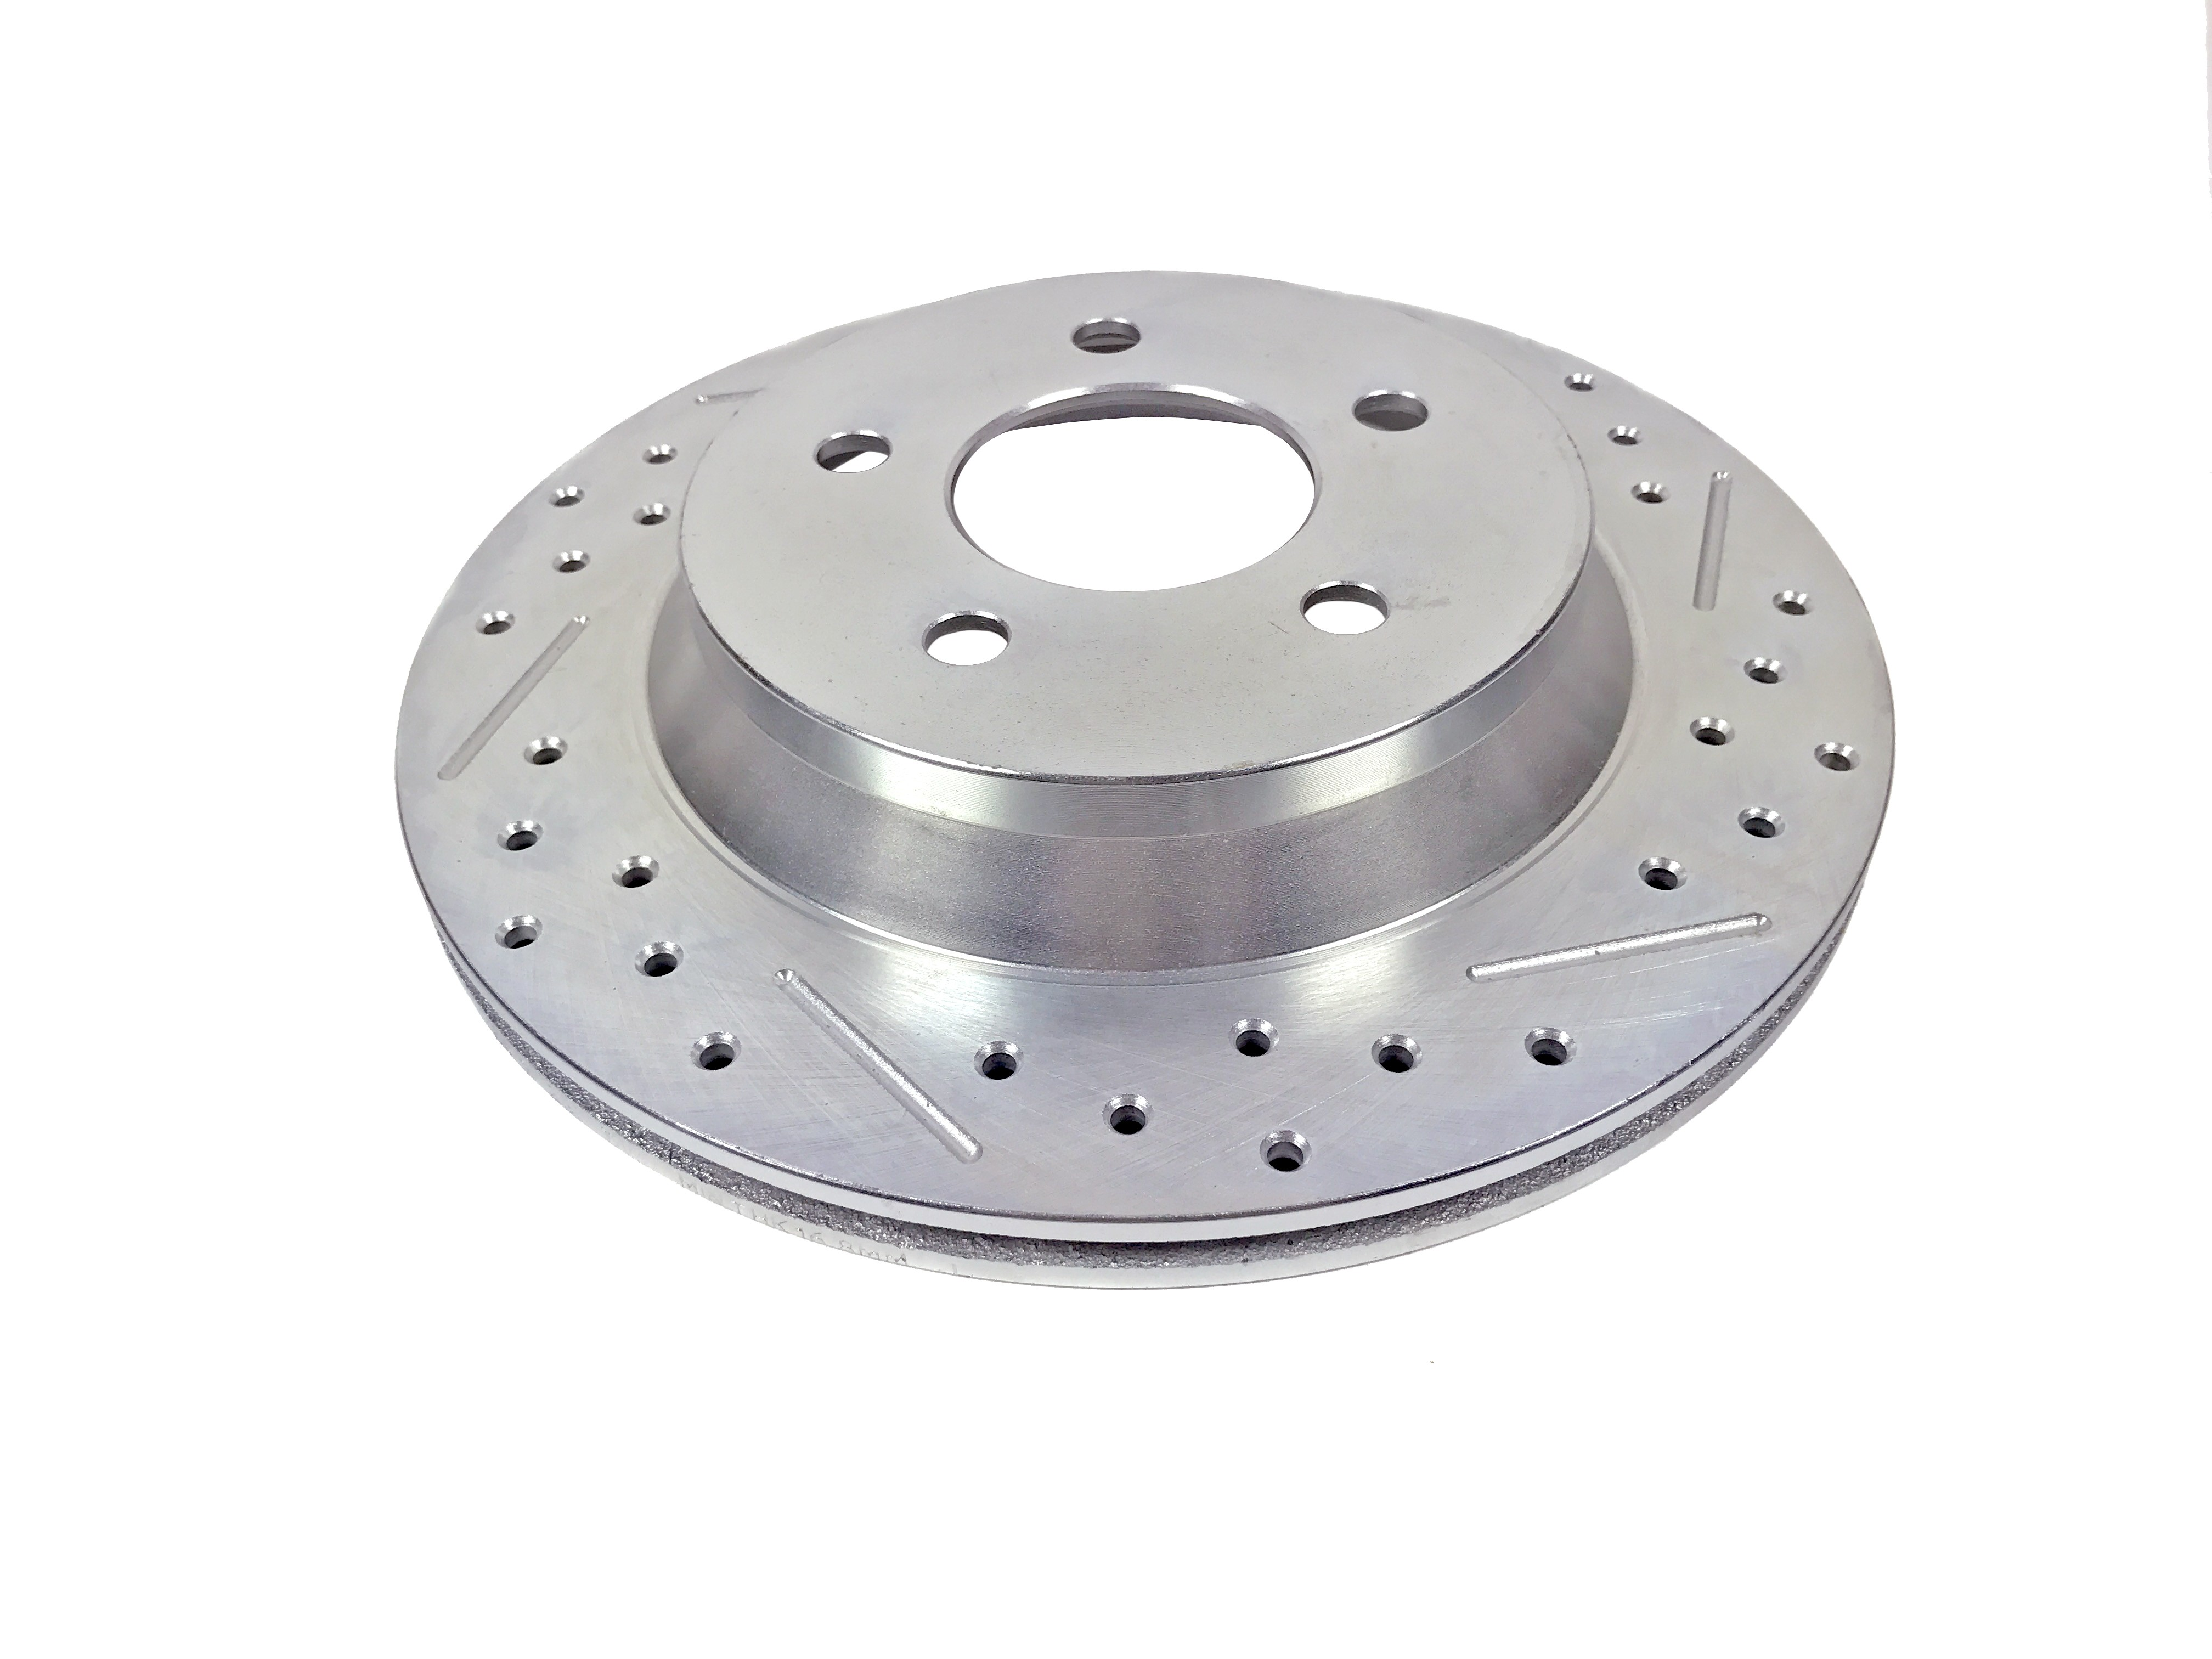 Baer Sport Rotors, Rear, Fits Various Ford Mustang Applications